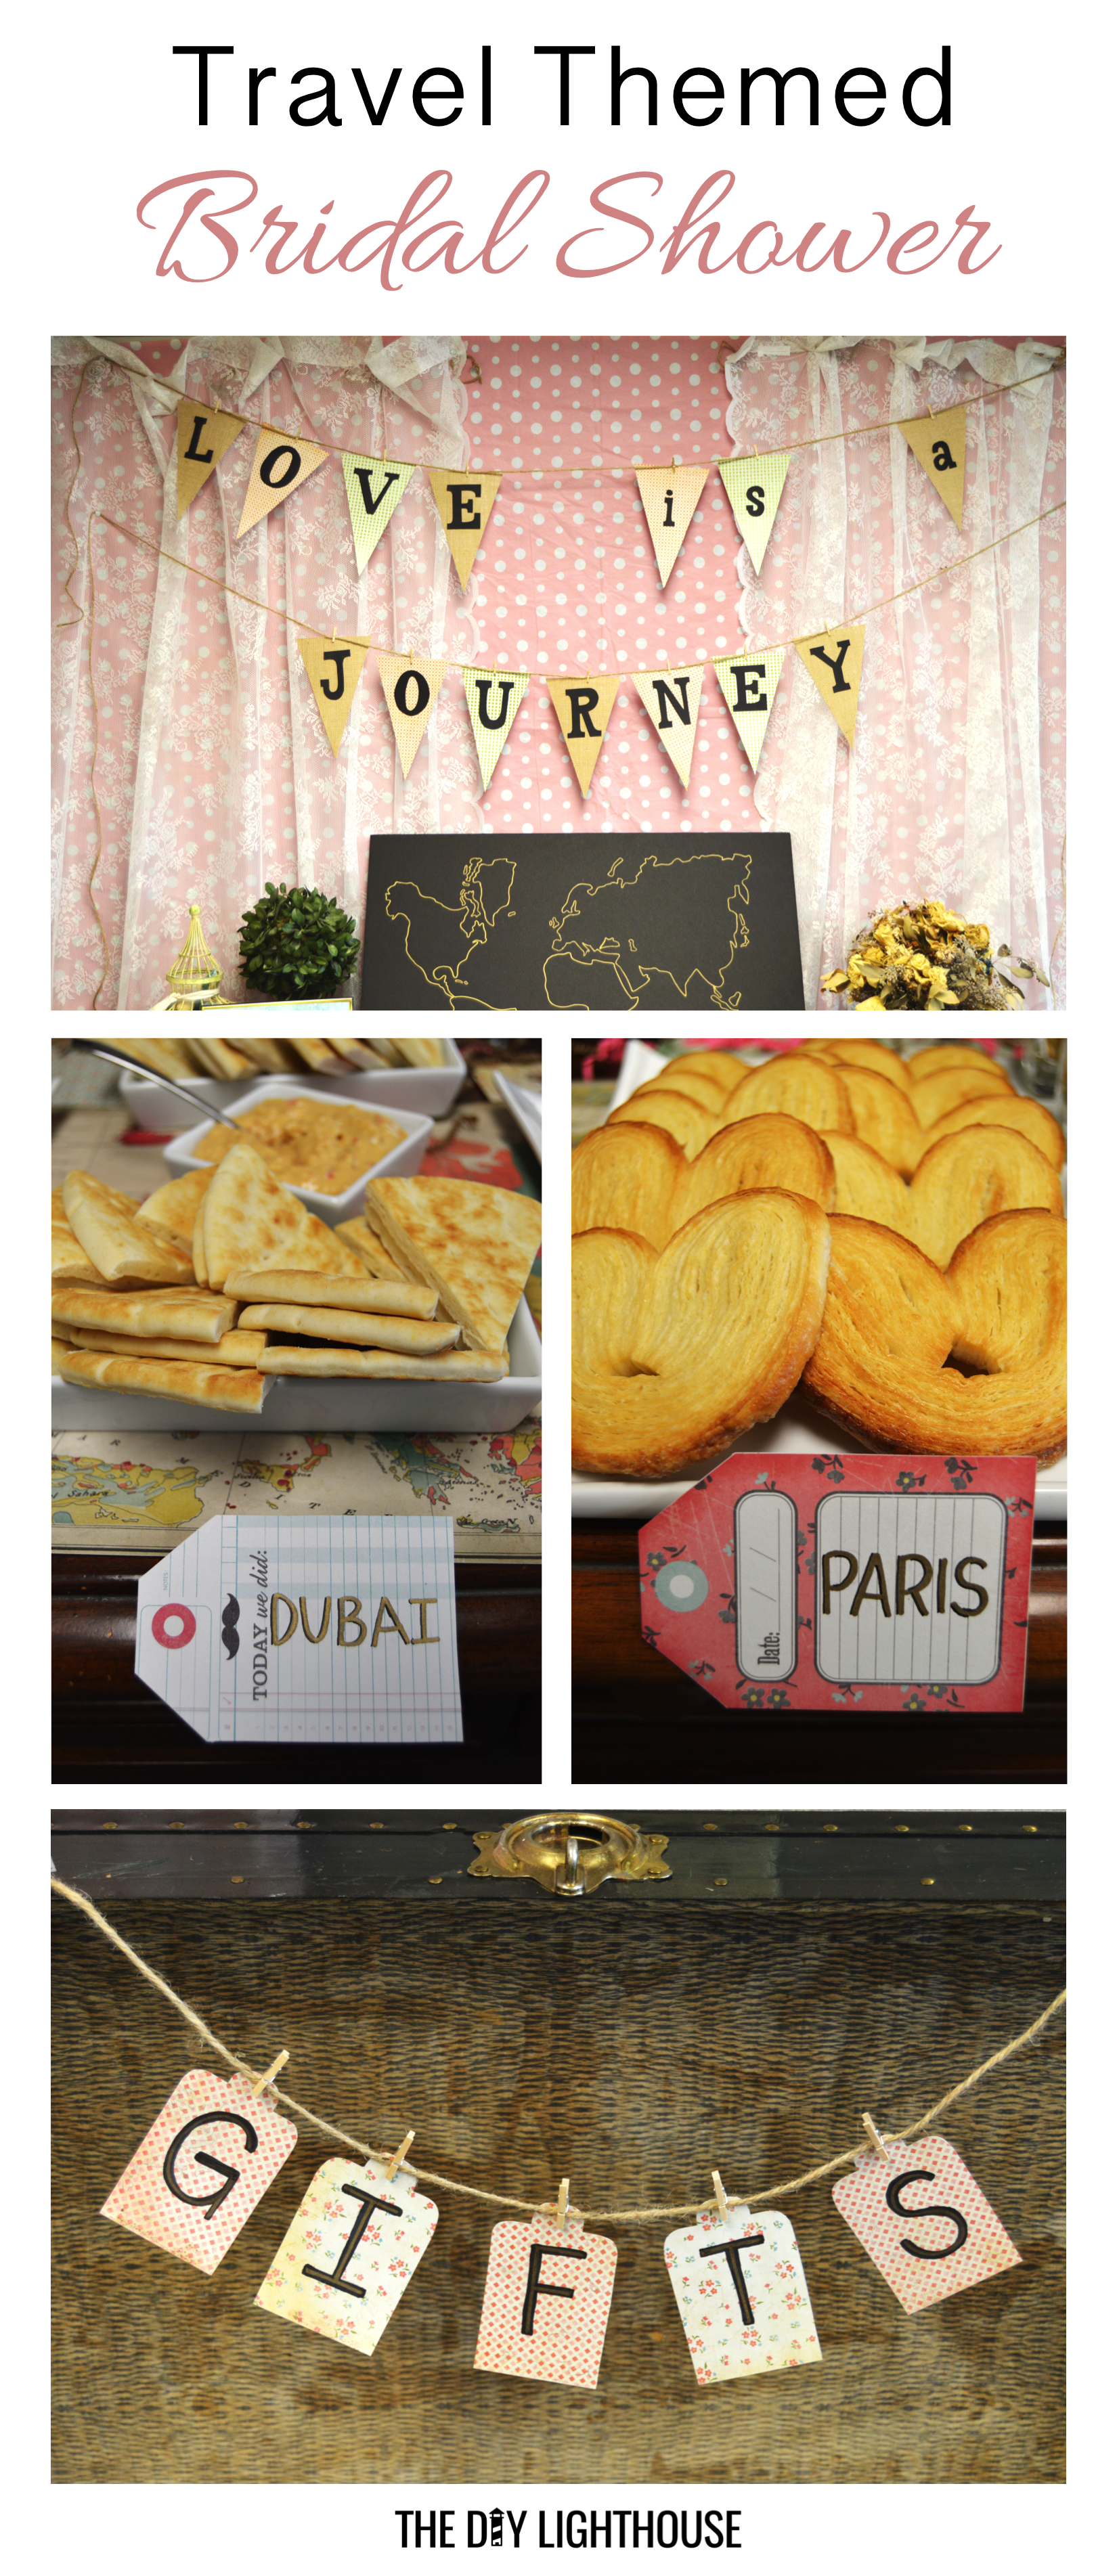 Marvelous Travel Themed Wedding Decorations Images